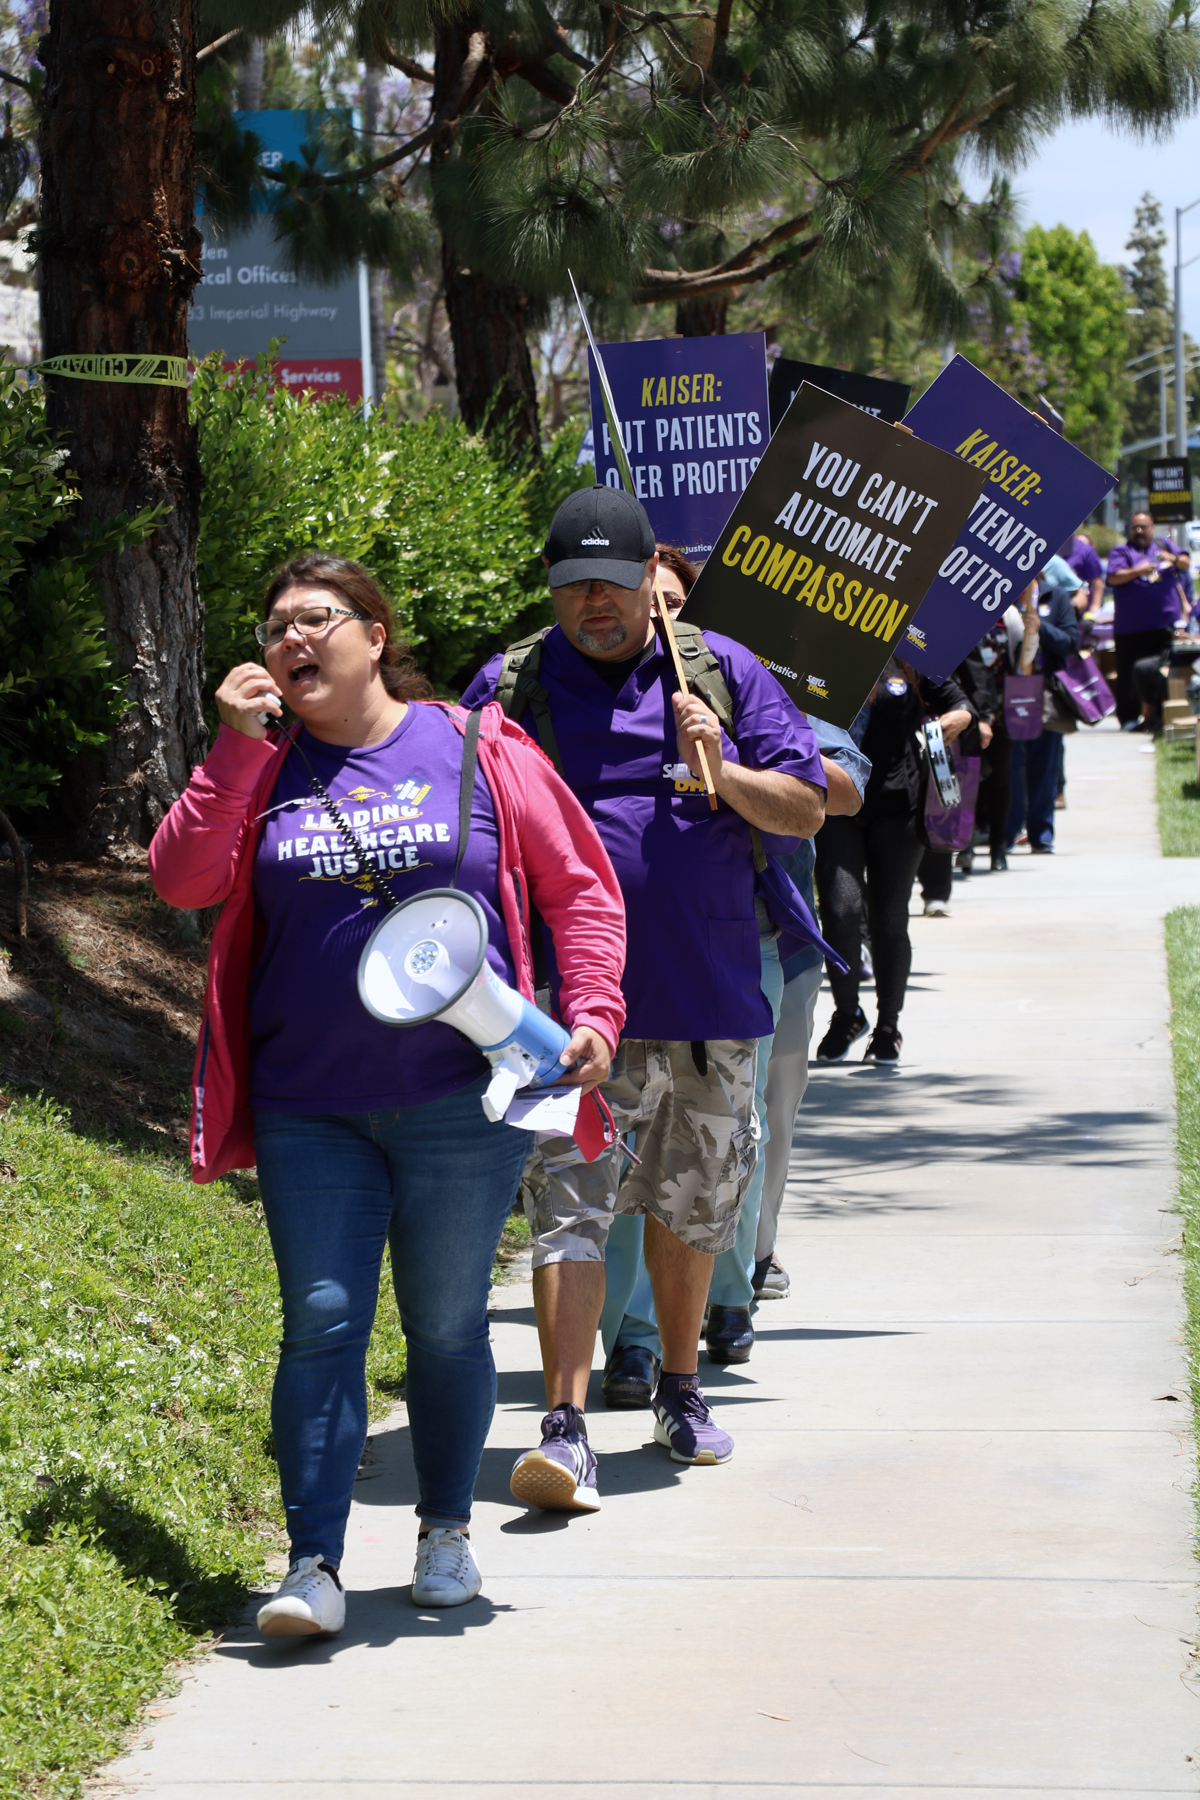 Kaiser Permanente workers protest outside the Downey campus in May 2019. Photo by Alex Dominguez